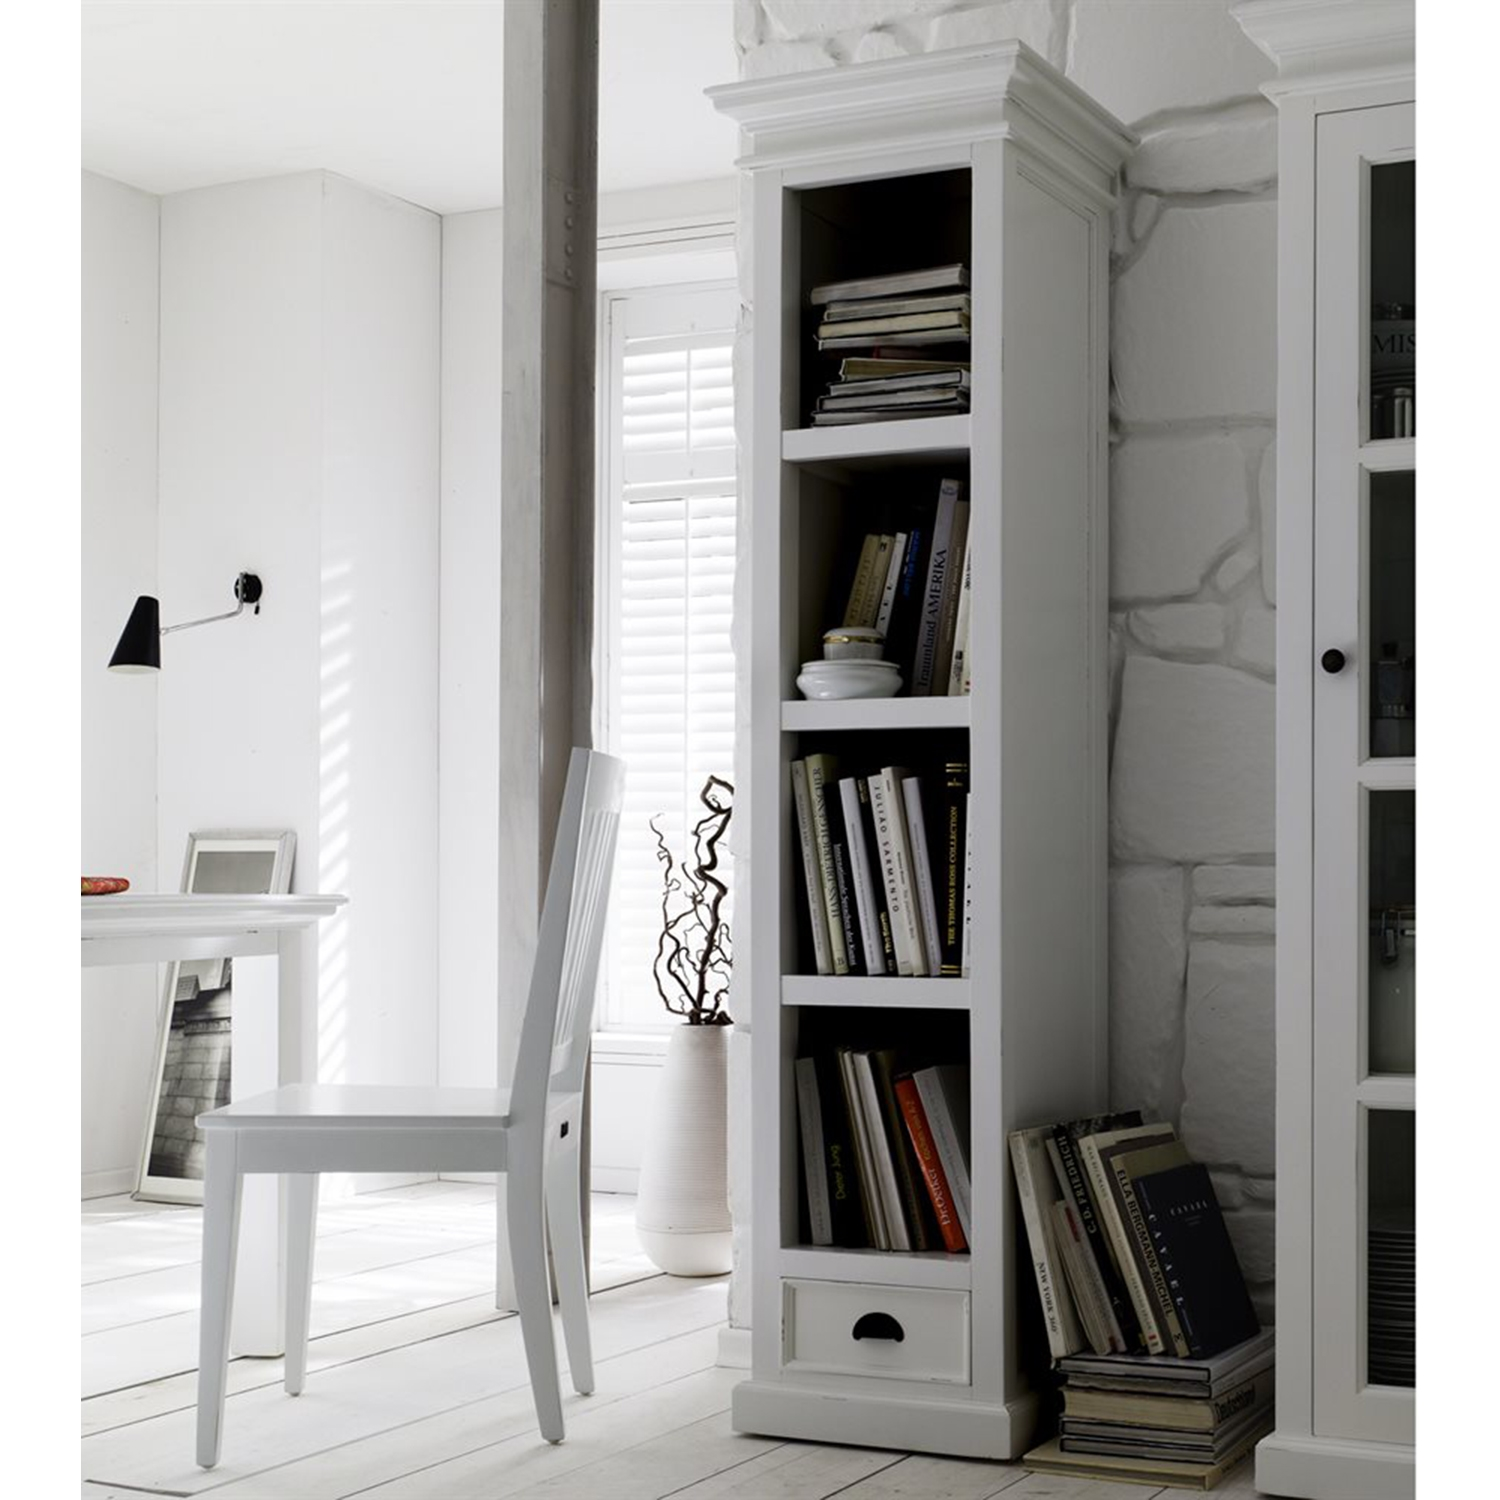 Halifax Bookshelf with Drawer - Pure White - NSOLO-CA601